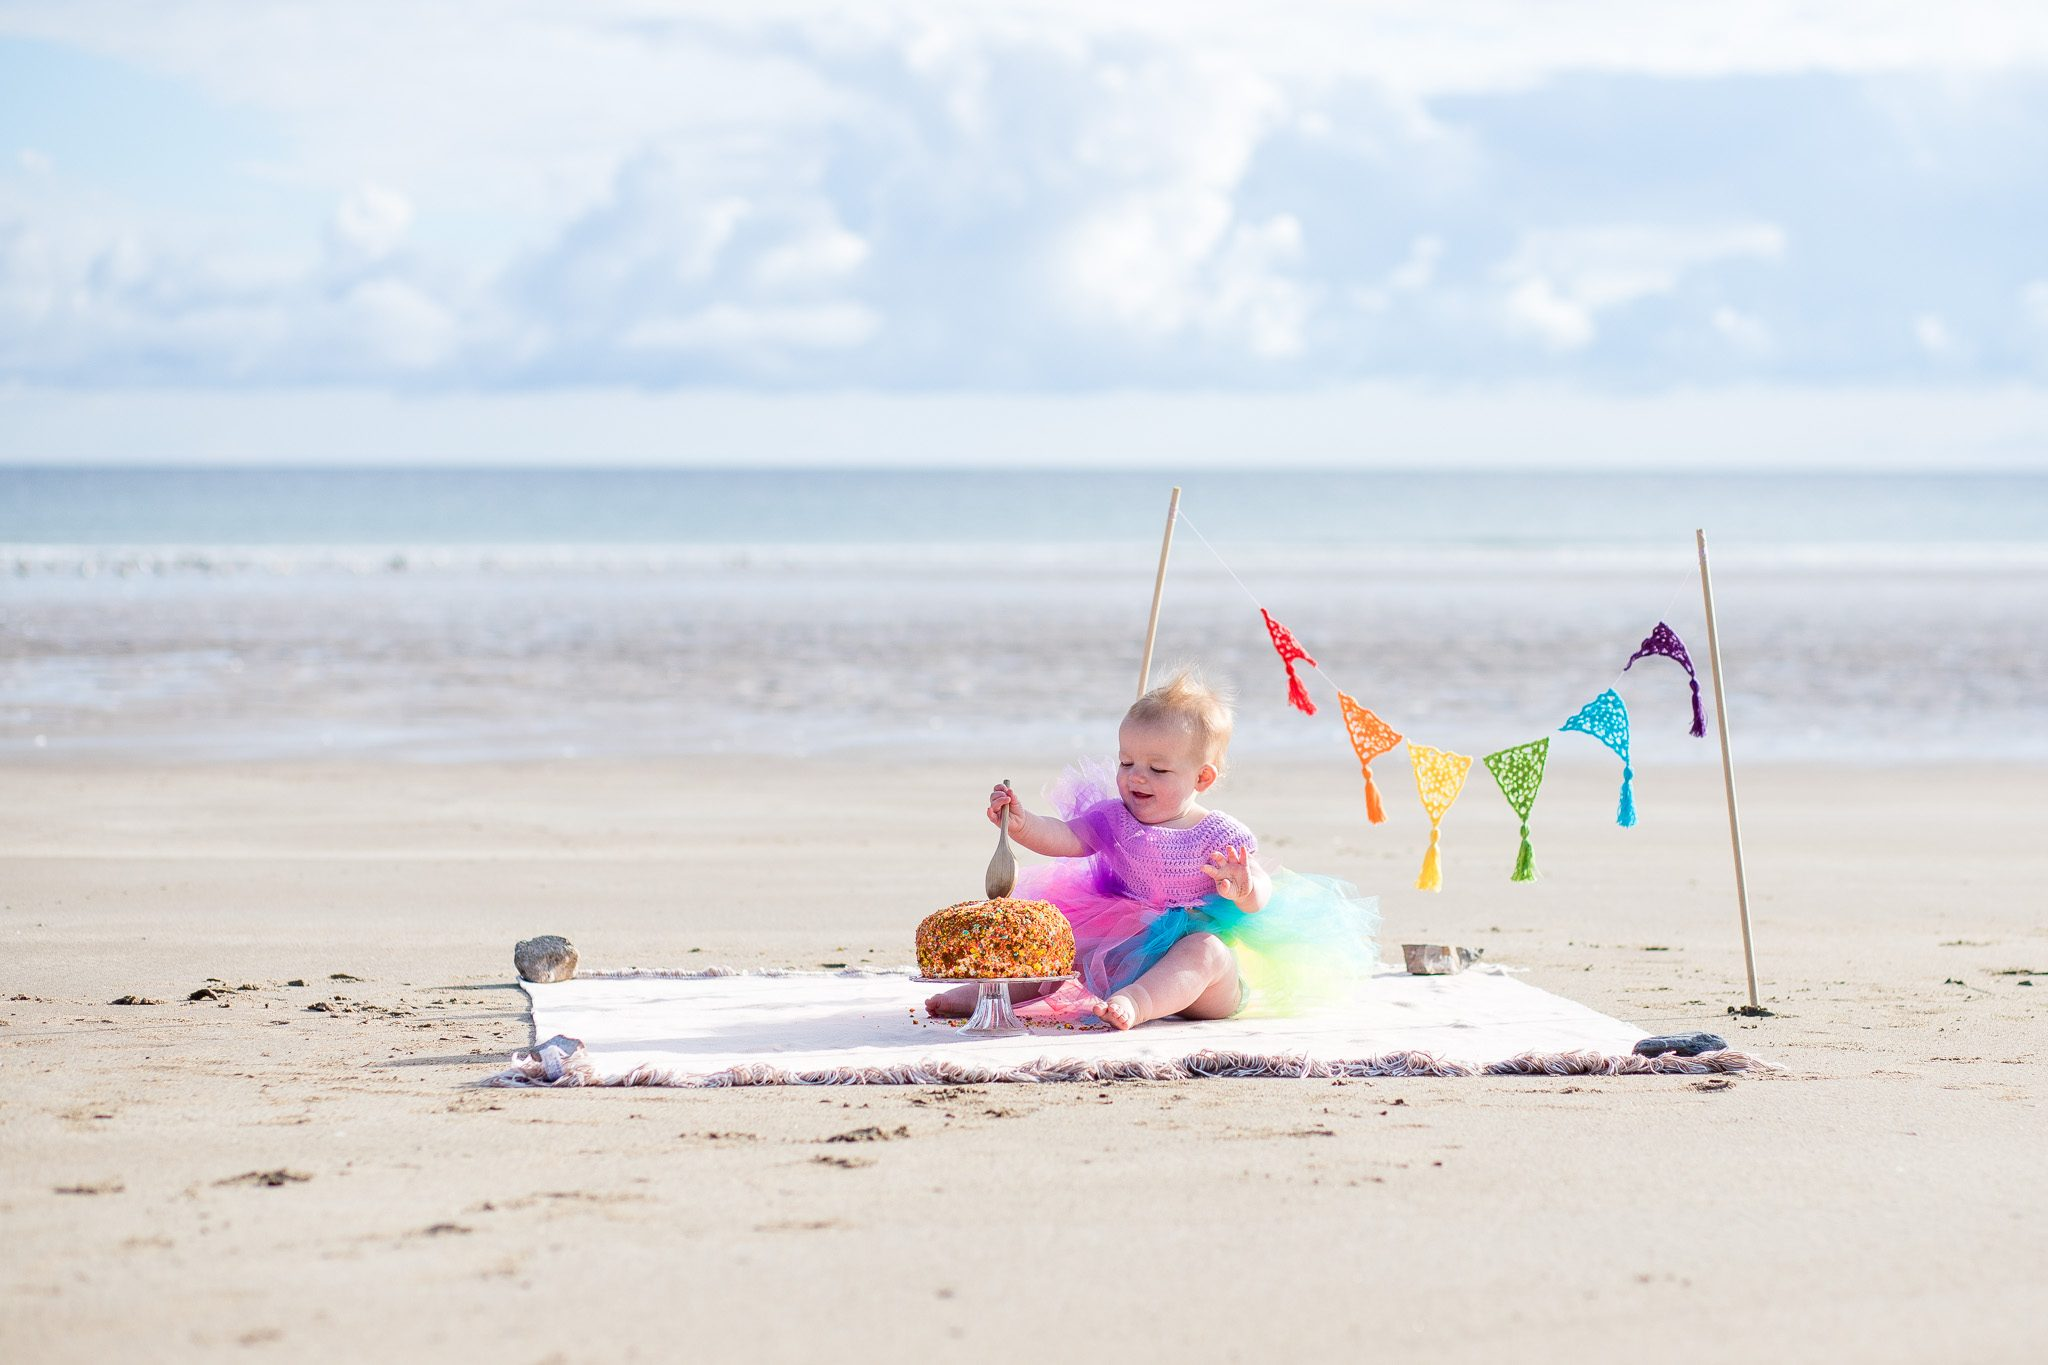 Cake smash Photographer Aberdeenshire - Family photography aberdeenshire - Debbie Dee Photography - Lifestyle Family - Rainbow cake smash on sandend beach